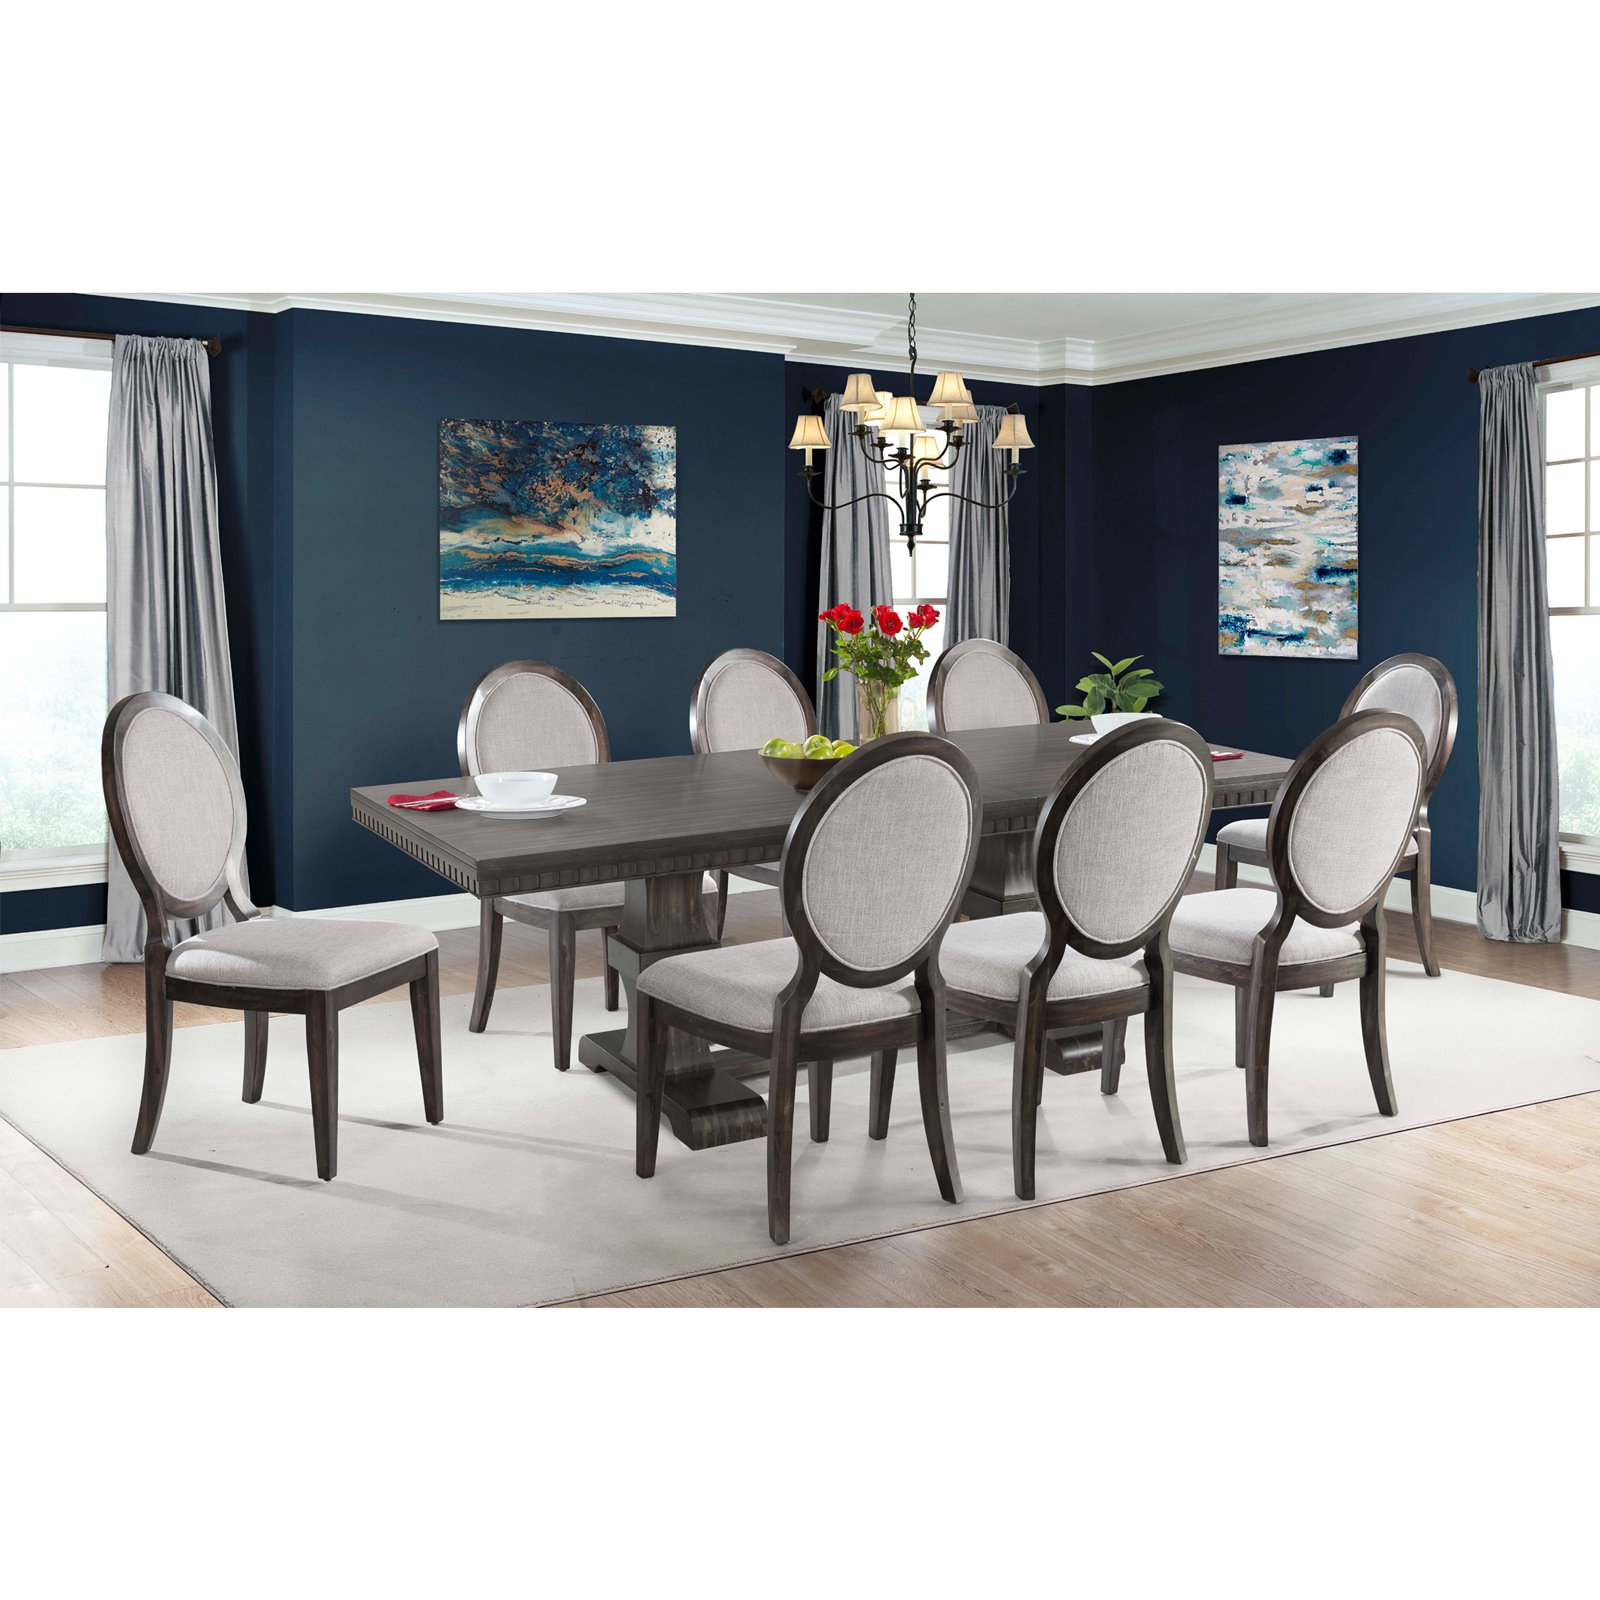 Picket House Furnishings Steele 9 Piece Extension Dining Table Set with Round Back Chairs